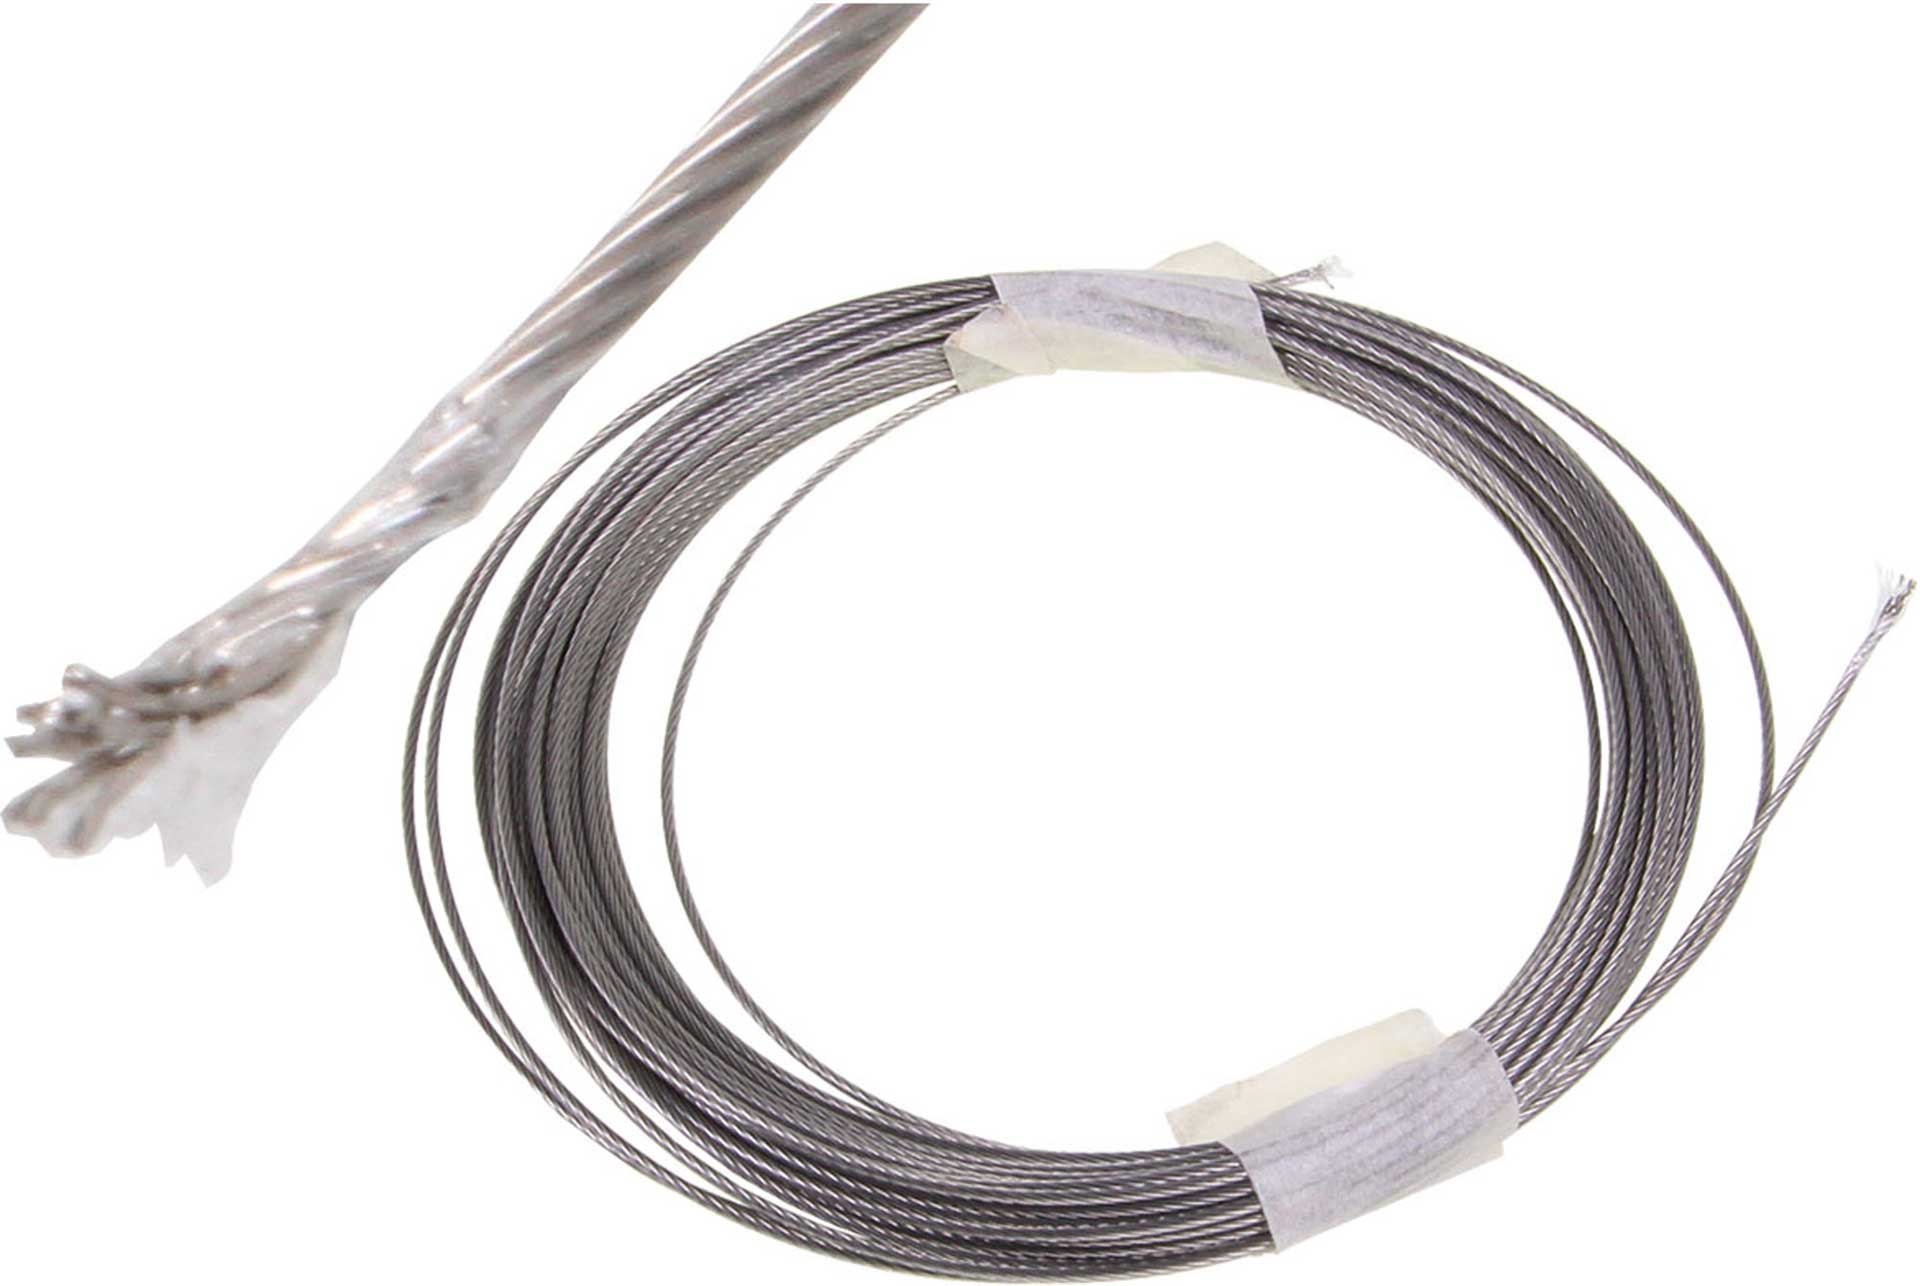 MODELLBAU LINDINGER STEEL FLEX WIRE 1,0MM NYLON COVERING 10M NATURE, 80,6KG MAXIMUM STRENGTH